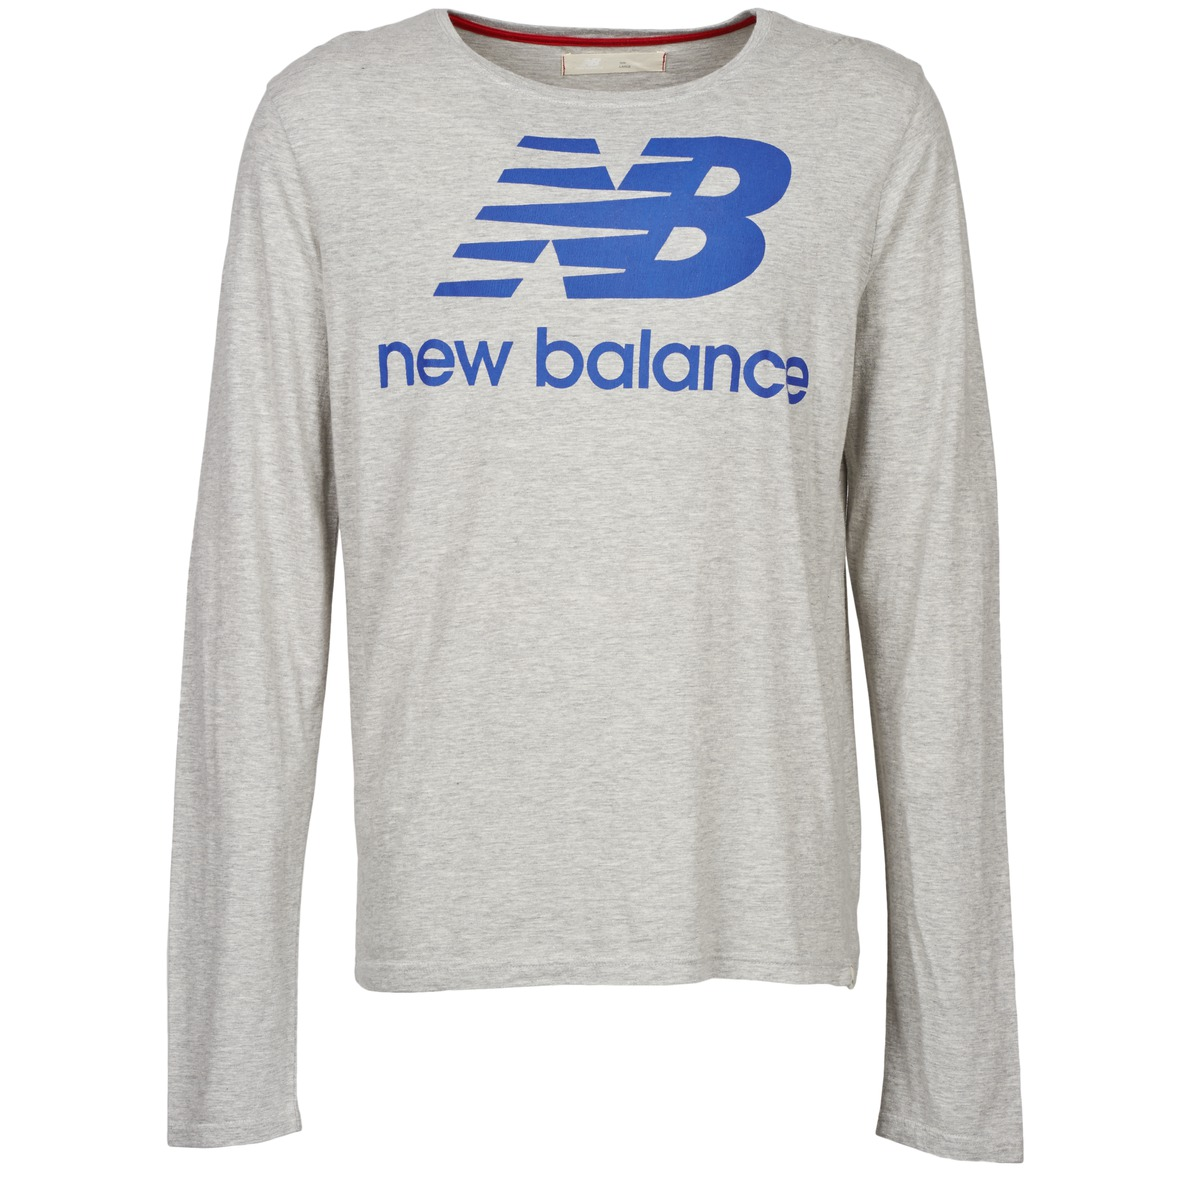 New Balance NBSS1403 LONG SLEEVE TEE Grigio